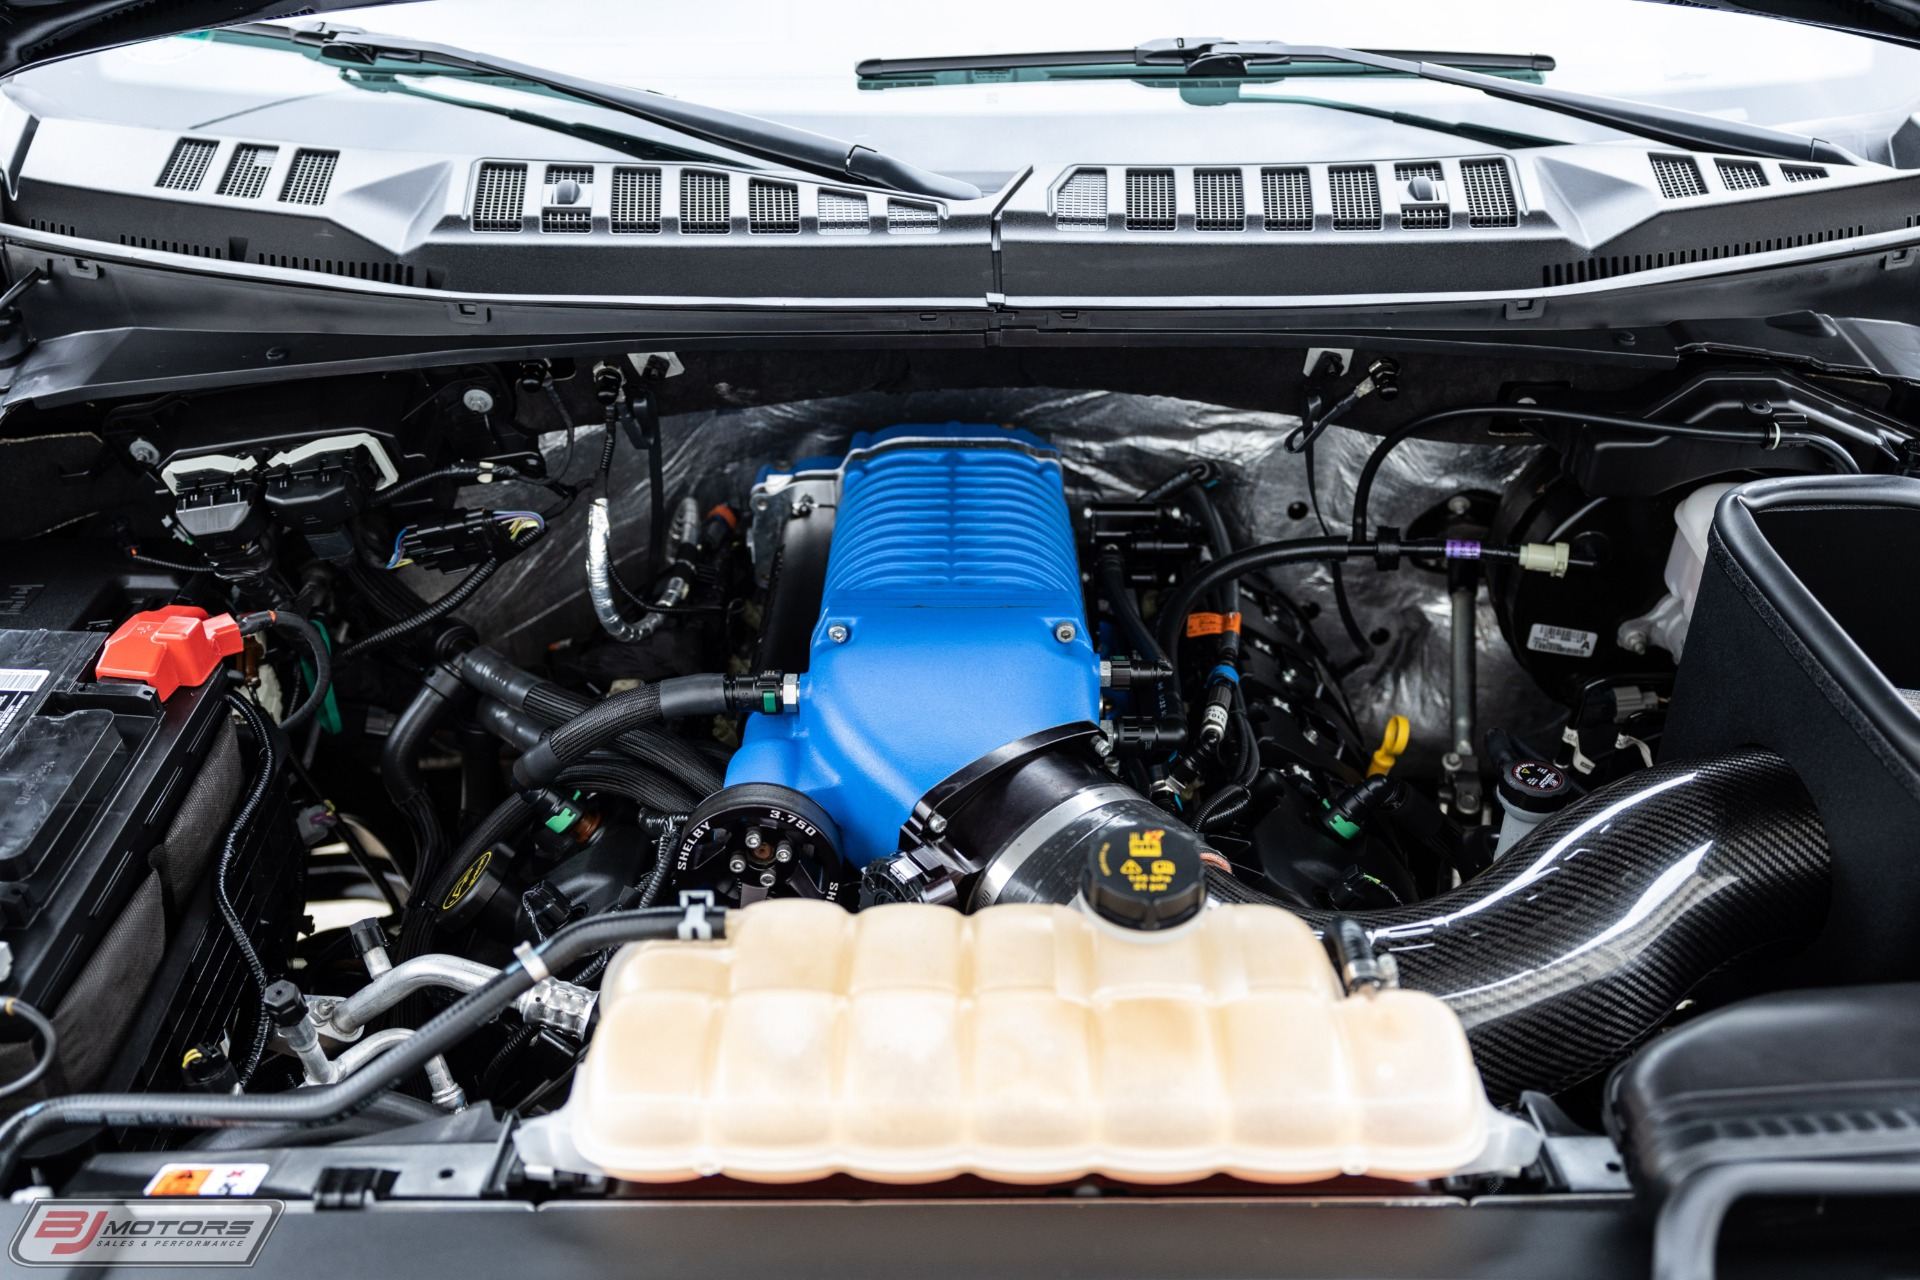 Used-2016-Ford-F-150-Shelby-Supercharged-700HP